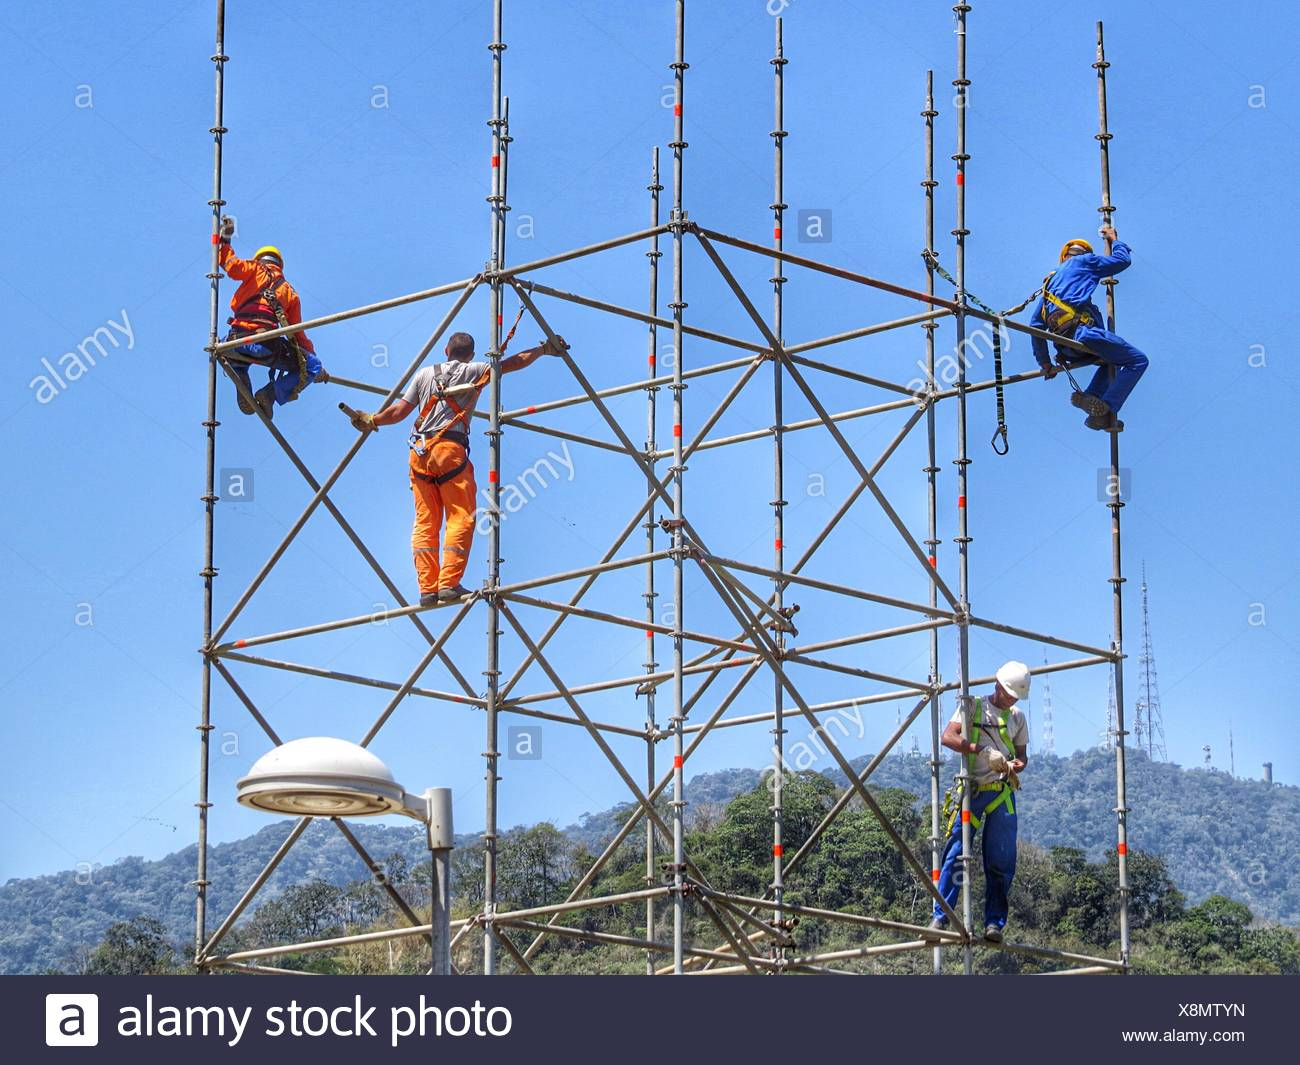 Workers On Scaffolding - Stock Image